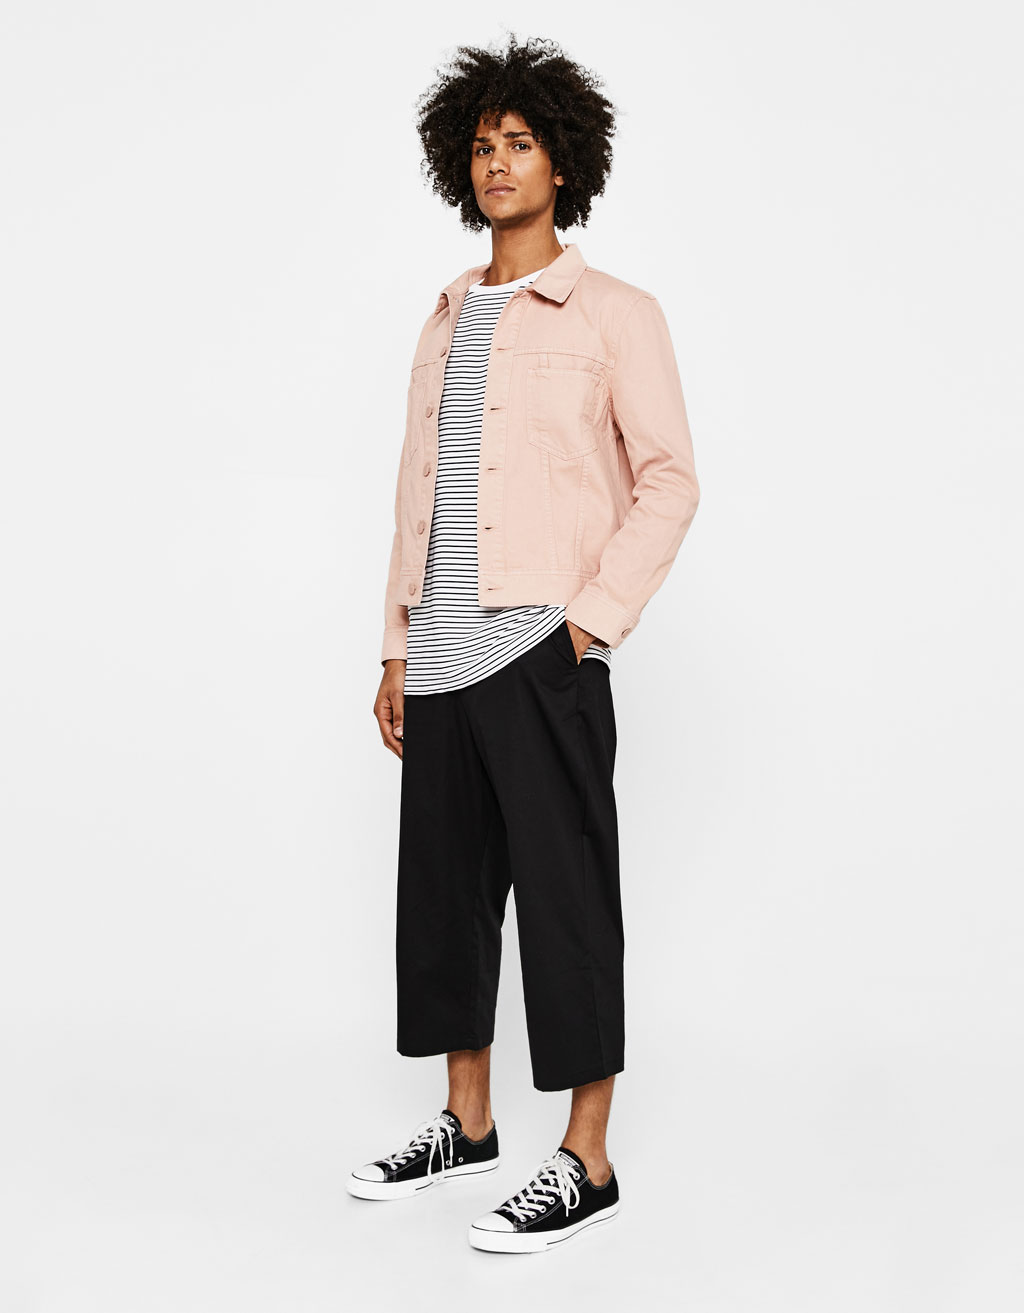 Cropped loose-fitting chinos